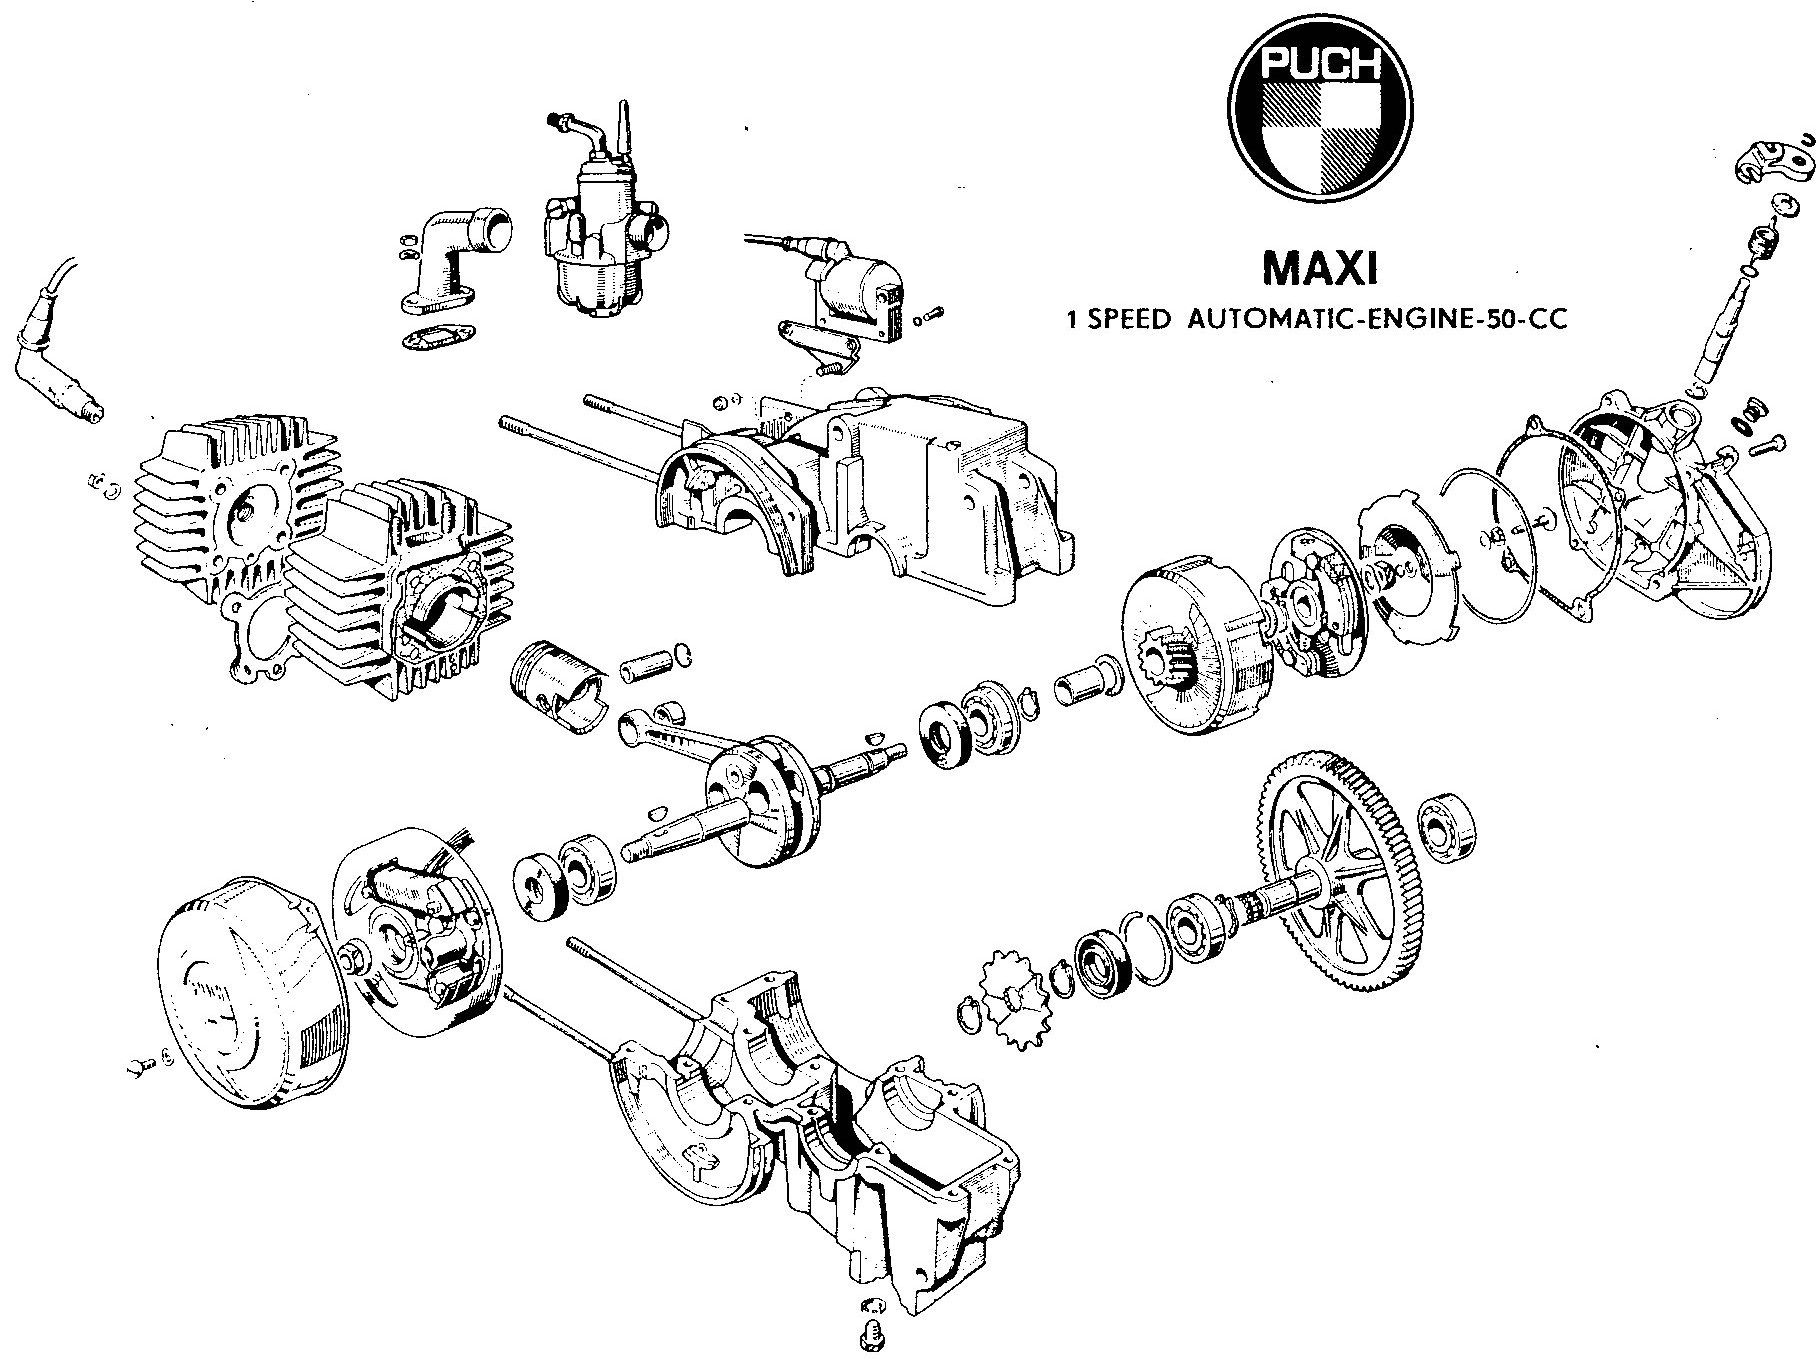 puch maxi wiring diagram 2002 bmw e46 radio handy of the e50 engine mopeds  lil 39chopz